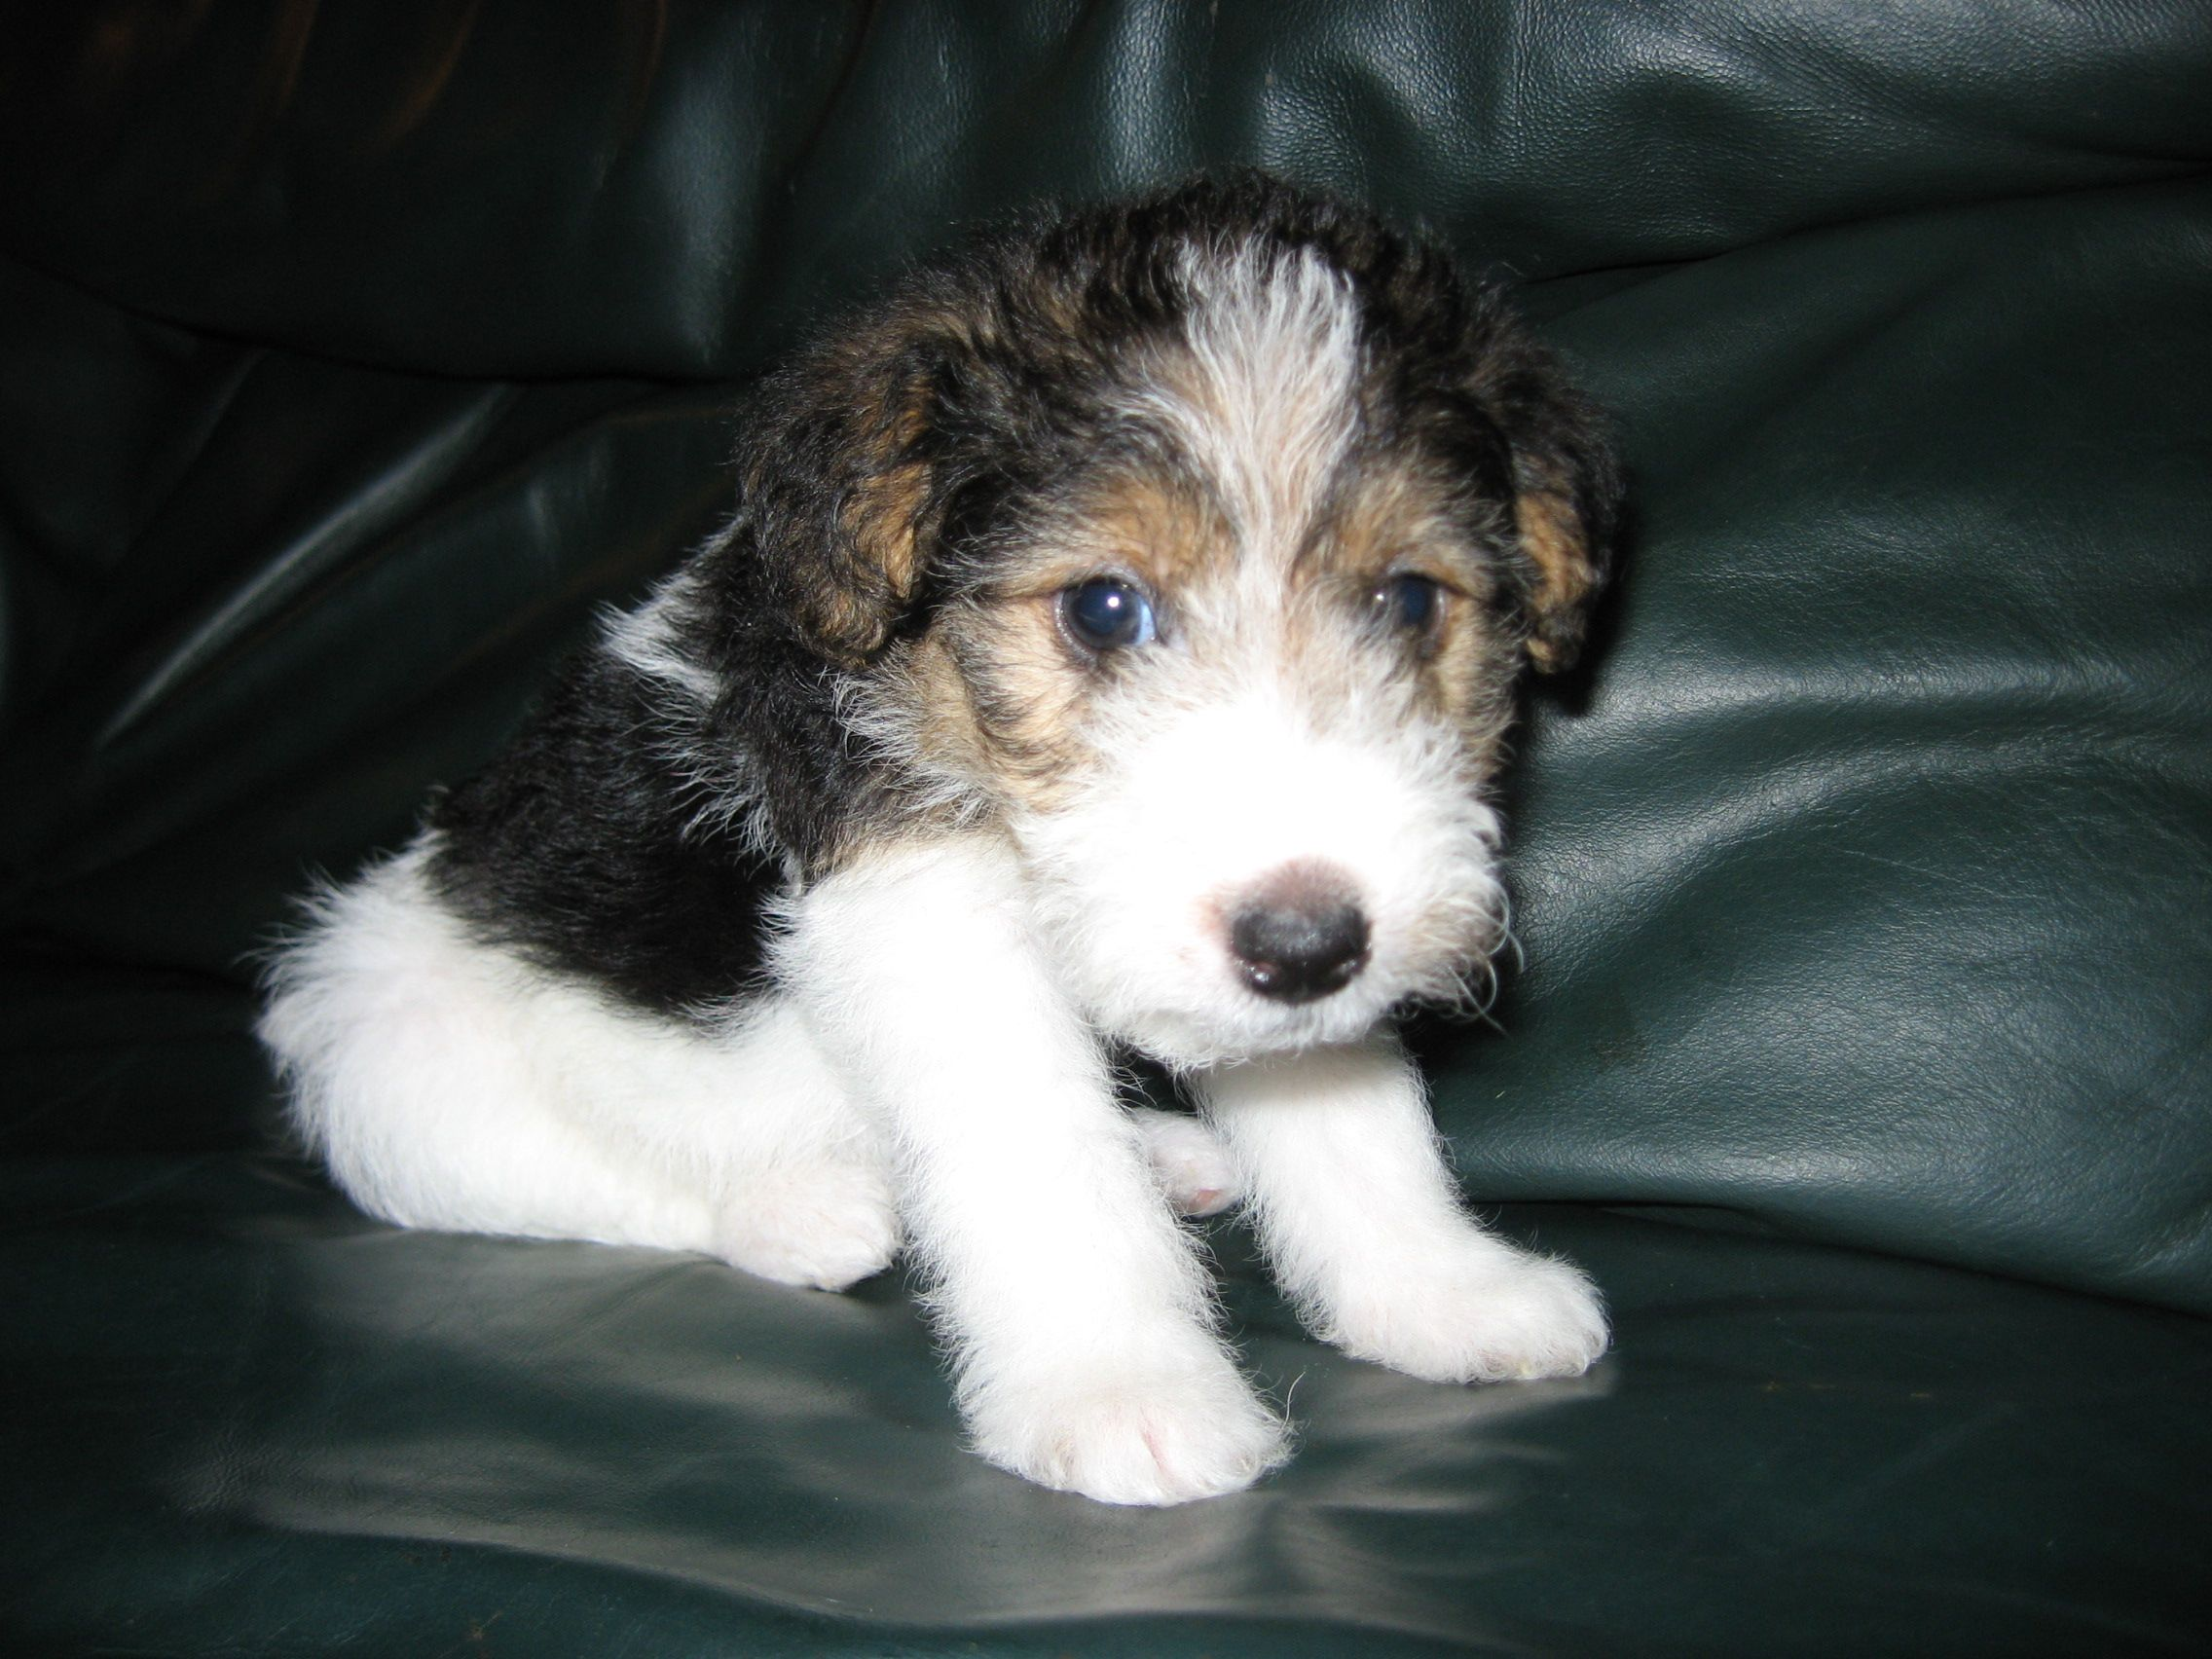 Baby! Wire Haired Fox Terrier #Puppies | Dogs, dogs,dogs | Pinterest ...